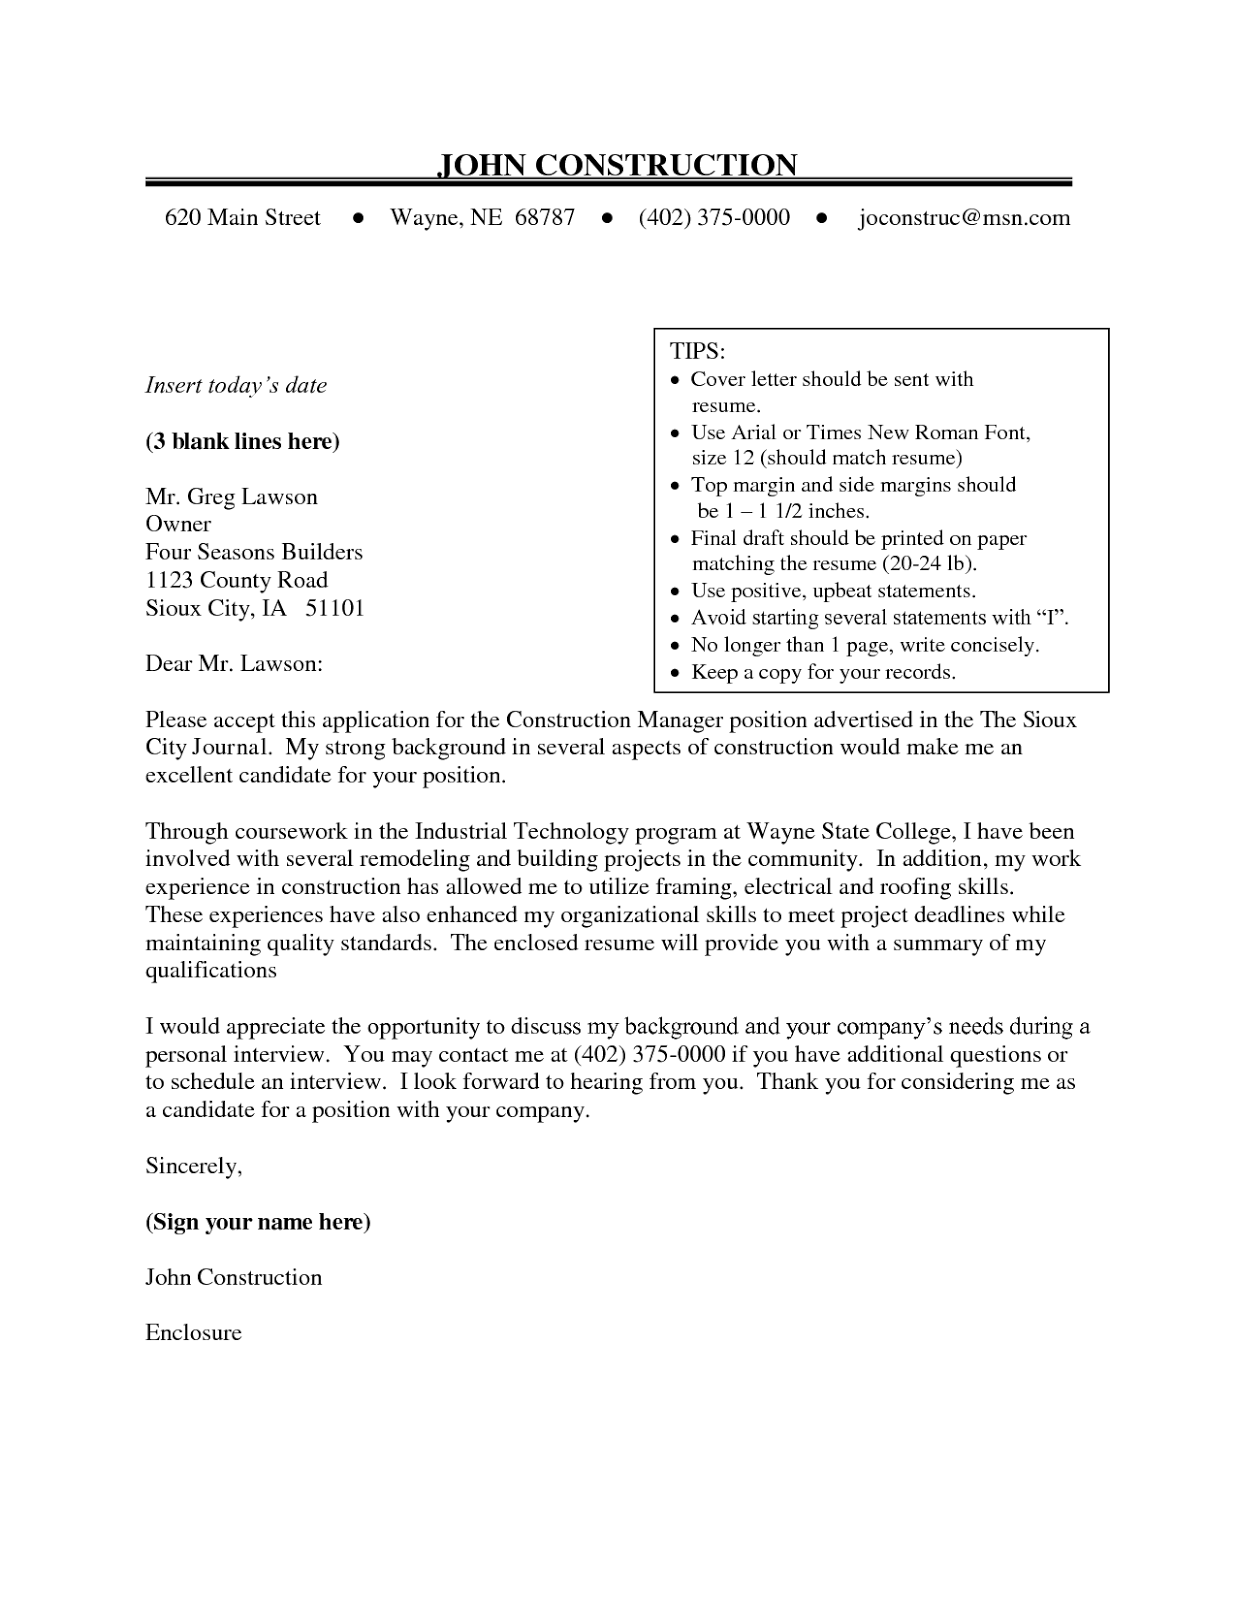 doc how to format a fax doc how to format a essay cover sheet template word page templates best photos of how to format a fax